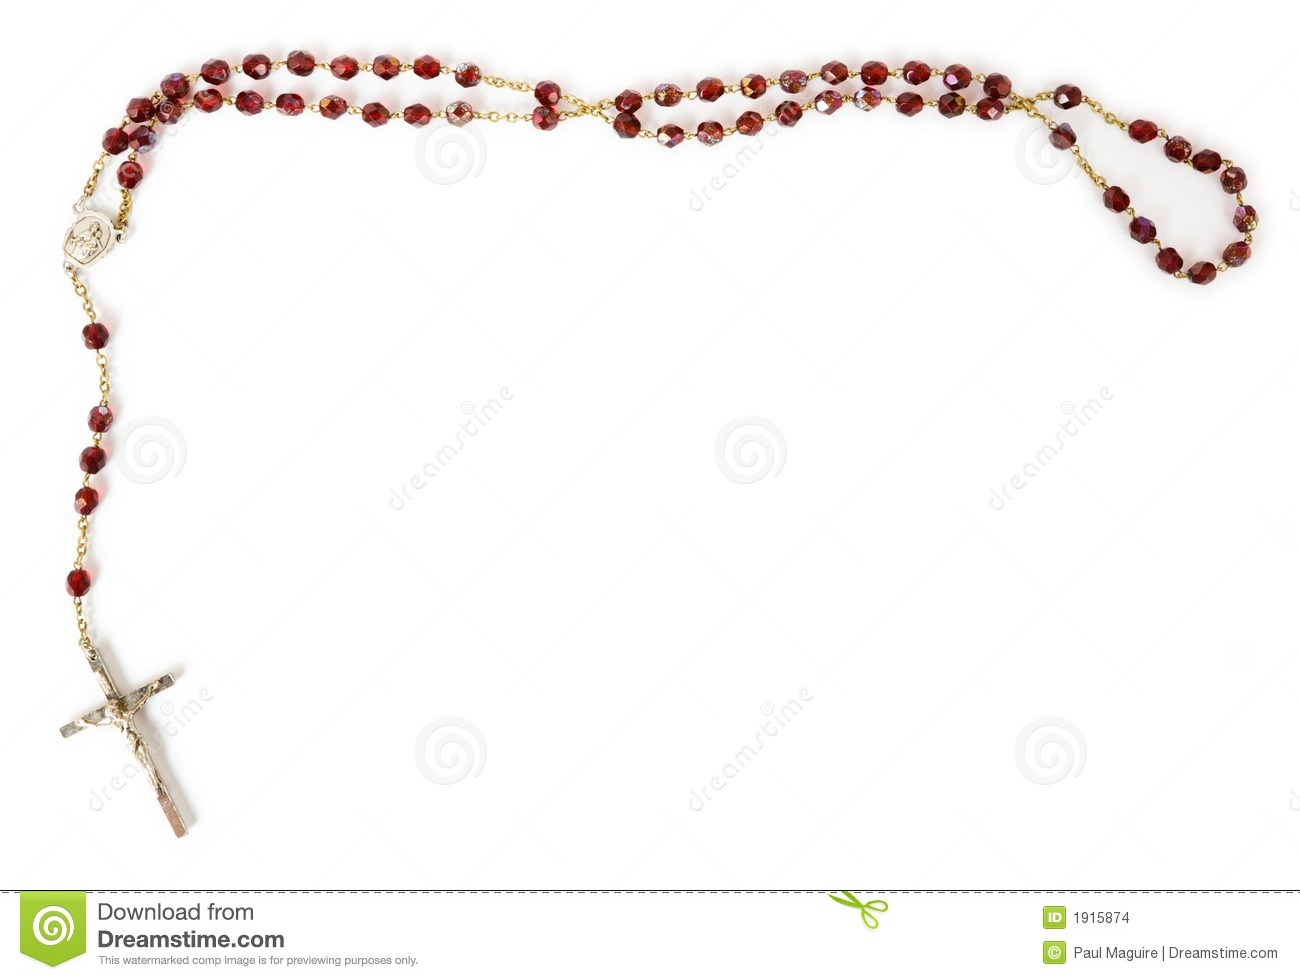 Catholic Rosary Beads Clipart Rosary Beads Isolated On White